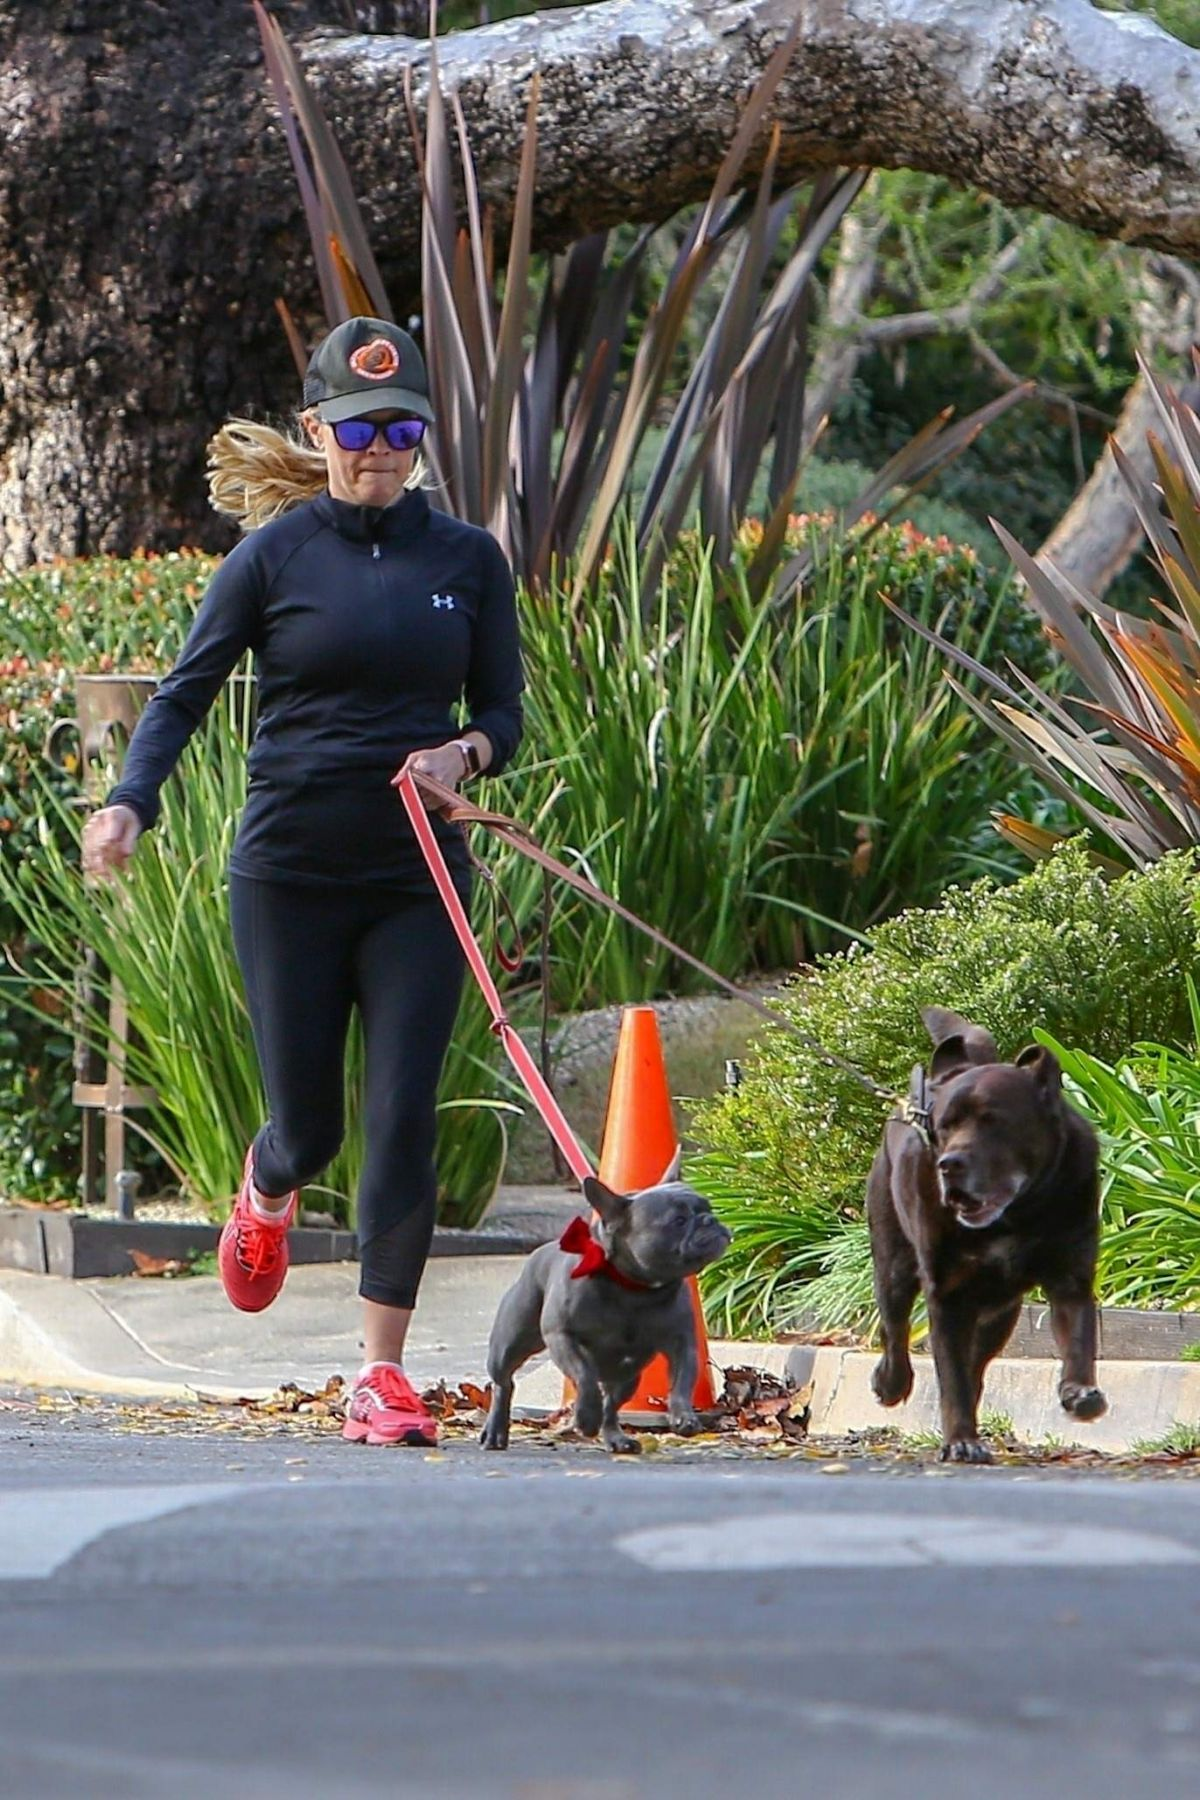 01 13 15 Today S Card Was Drawn From The Archangel Power: REESE WITHERSPOON Out Jogging With Her Dogs In Santa